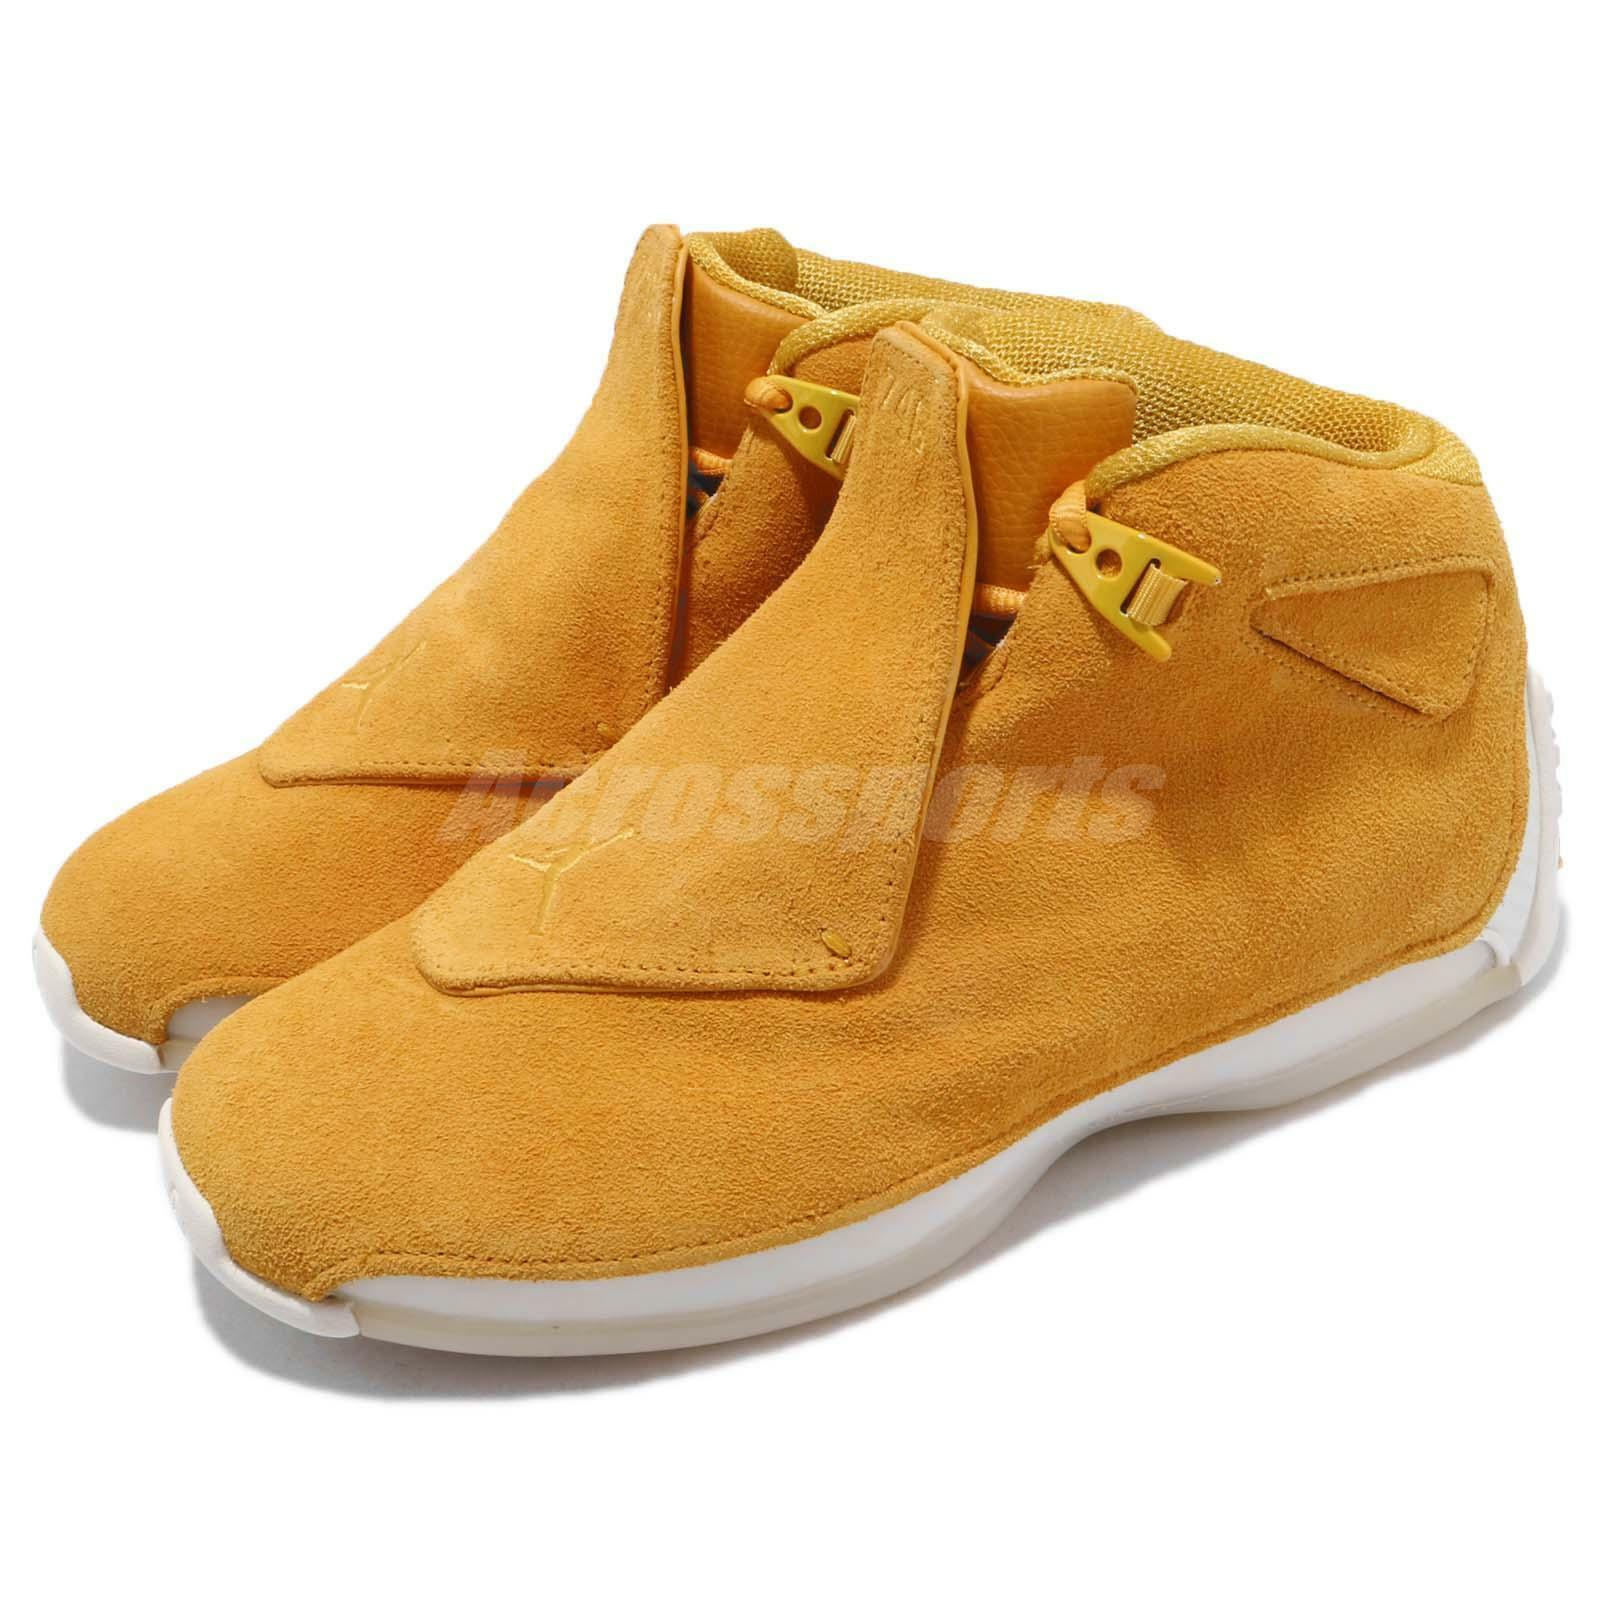 Nike Yelfaible Air Jordan 18 Retro Yelfaible Nike Ochre Suede homme Basketball chaussures AA2494-701 a30d19